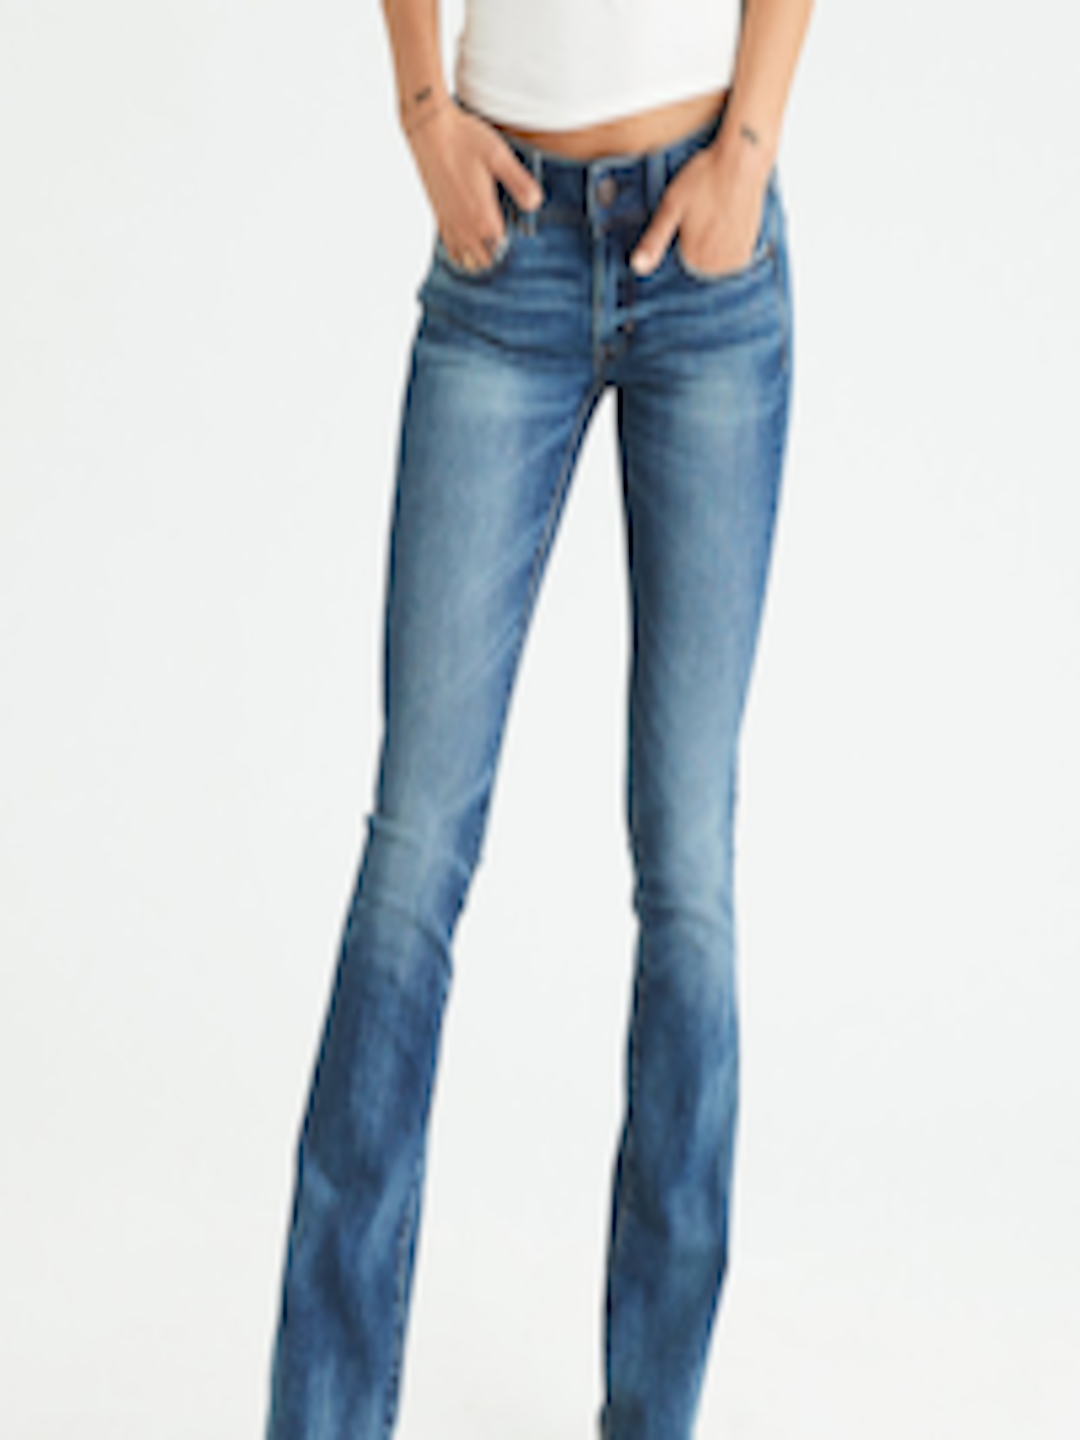 5f4679d0 AMERICAN EAGLE OUTFITTERS Women Blue Bootcut Mid-Rise Clean Look  Stretchable Jeans